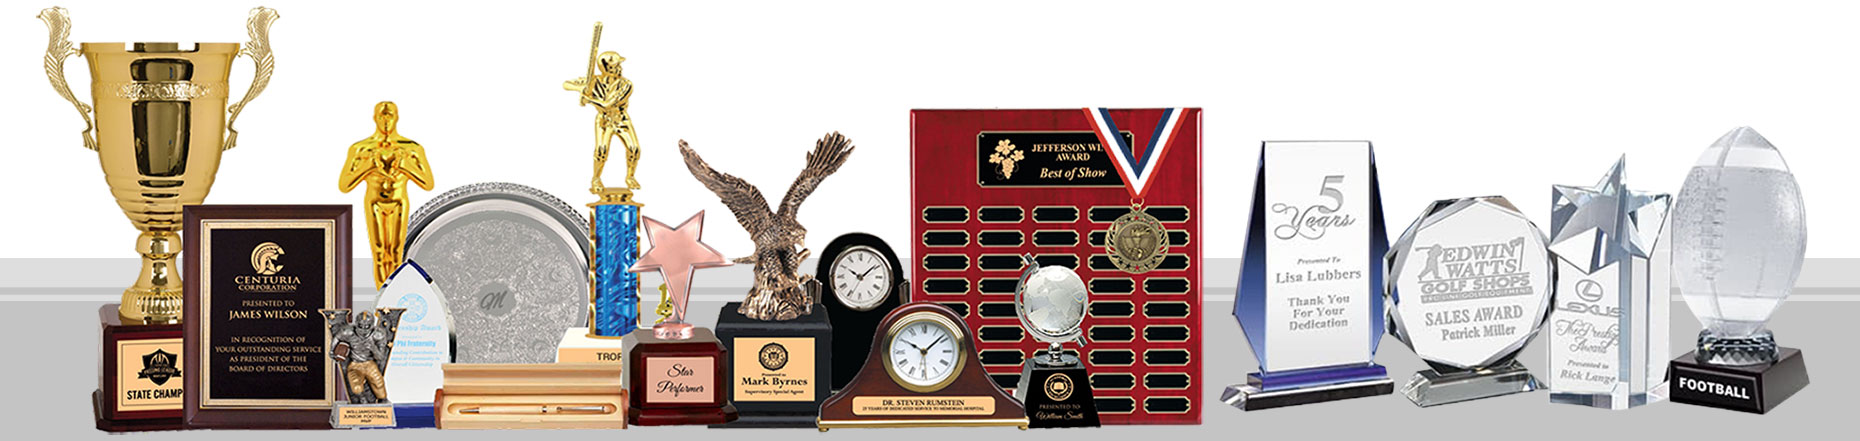 collage of different awards, trophies and plaques in different sizes and colors. Cup trophies, sports trophies, perpetual plaque, clocks, eagle awards, star awards, crystal awards and glass awards, and medals.